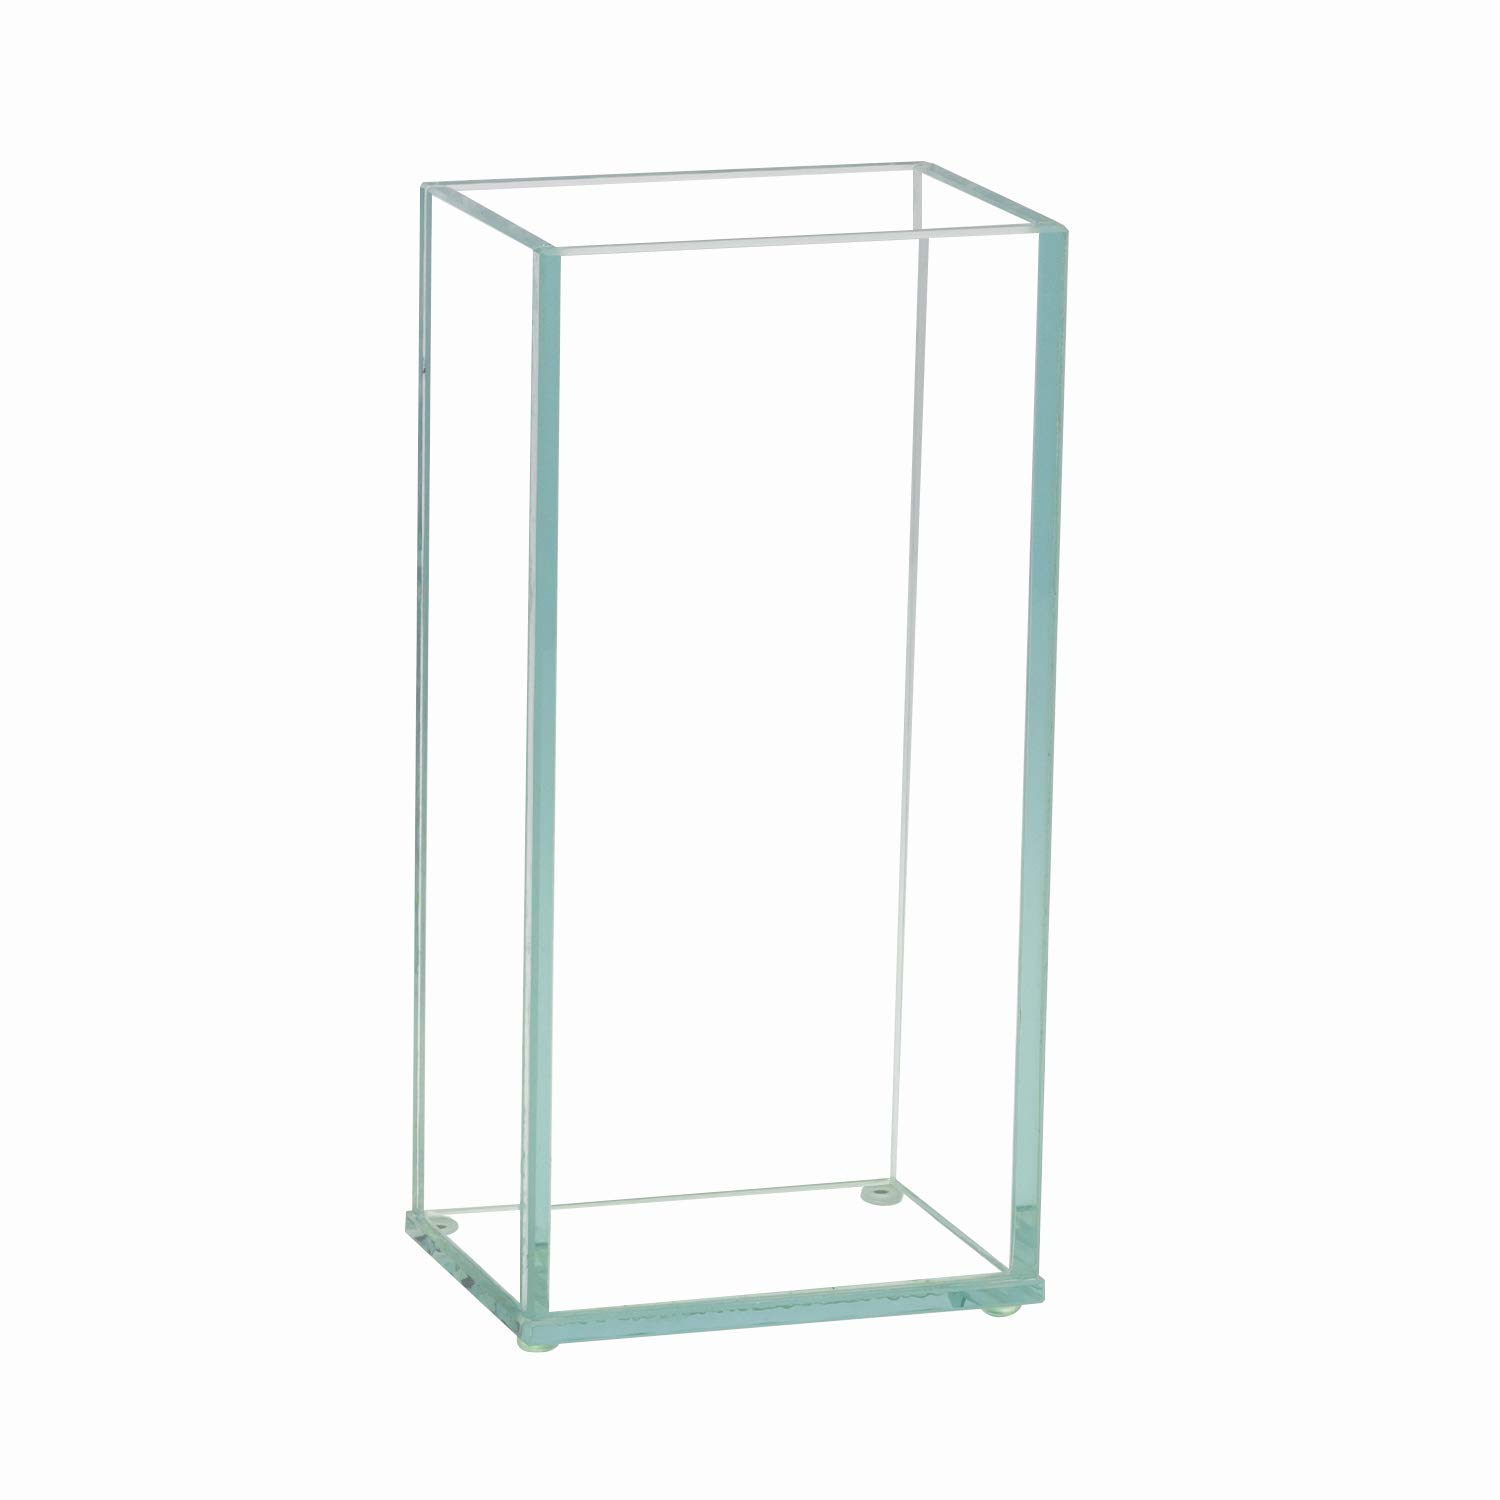 Royal Imports Flower Glass Vase Decorative Centerpiece for Home or Wedding Flat Rectangle Plate Glass, 4'' W x 8'' H, Clear